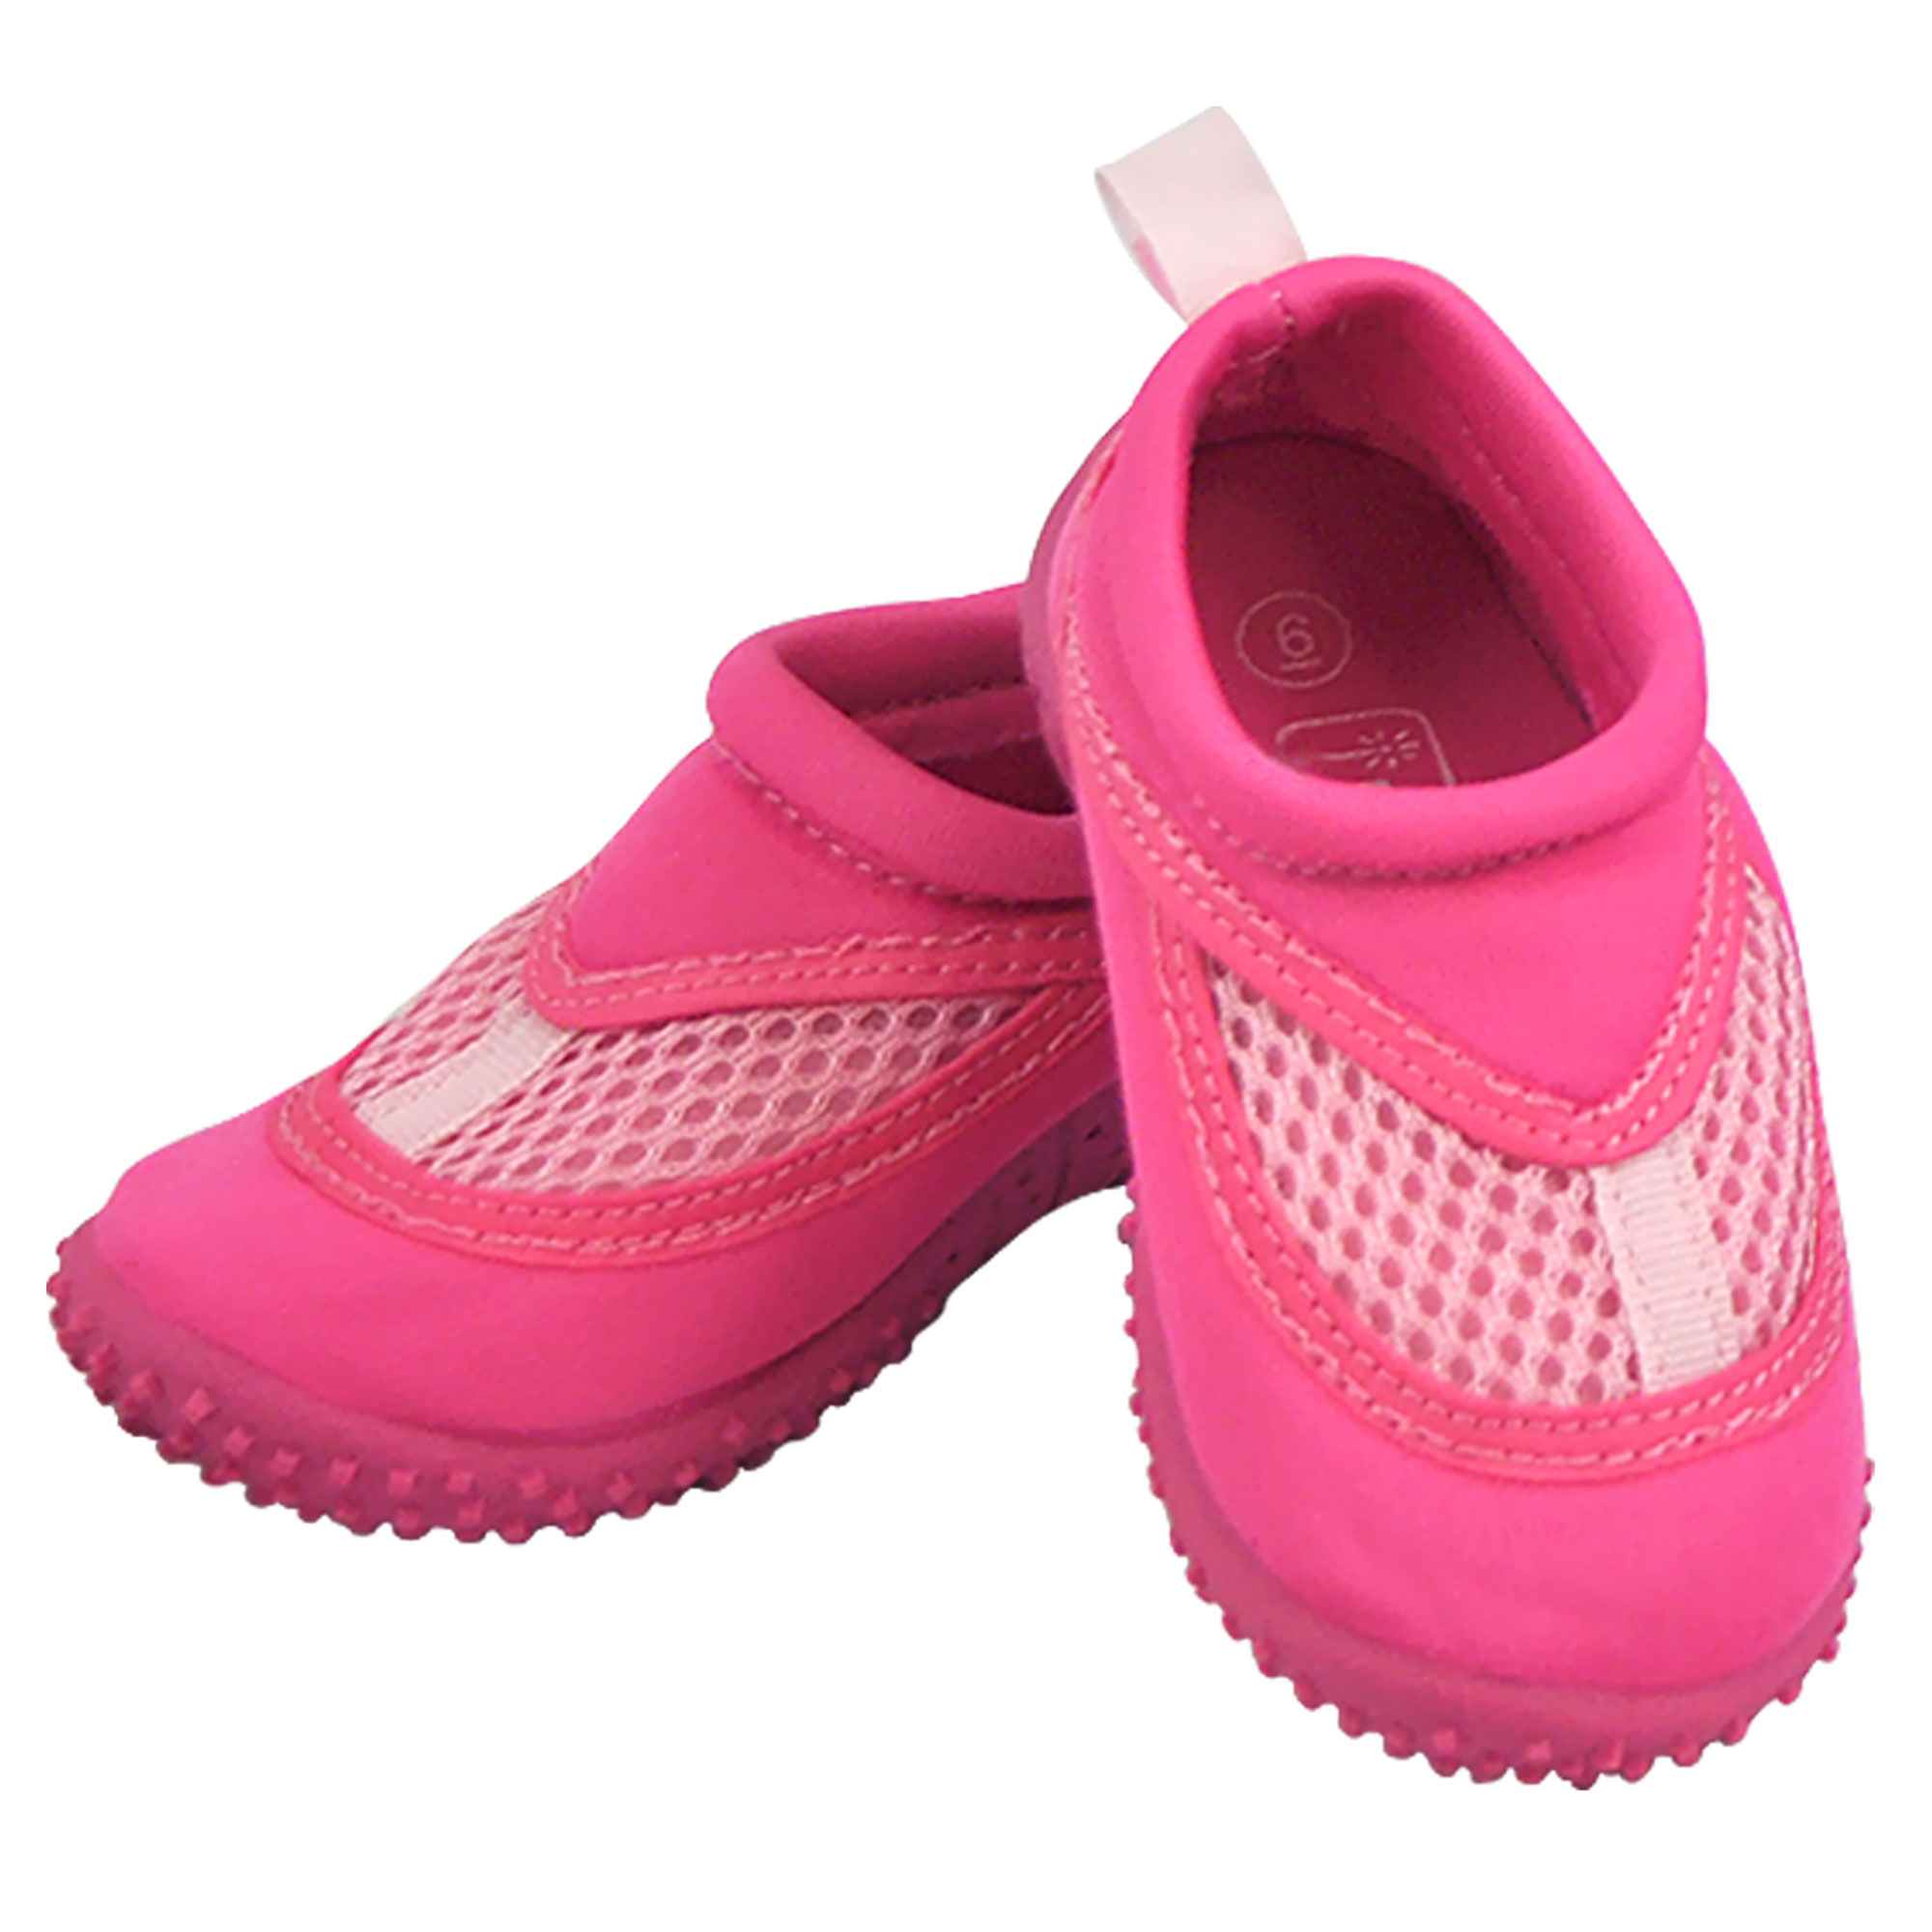 24af5dcd08 Iplay Baby Girls Sand and Water Swim Shoes Kids Aqua Socks for Babies,  Infants, Toddlers, and Children Hot Pink Size 7 / Zapatos De Agua -  Walmart.com